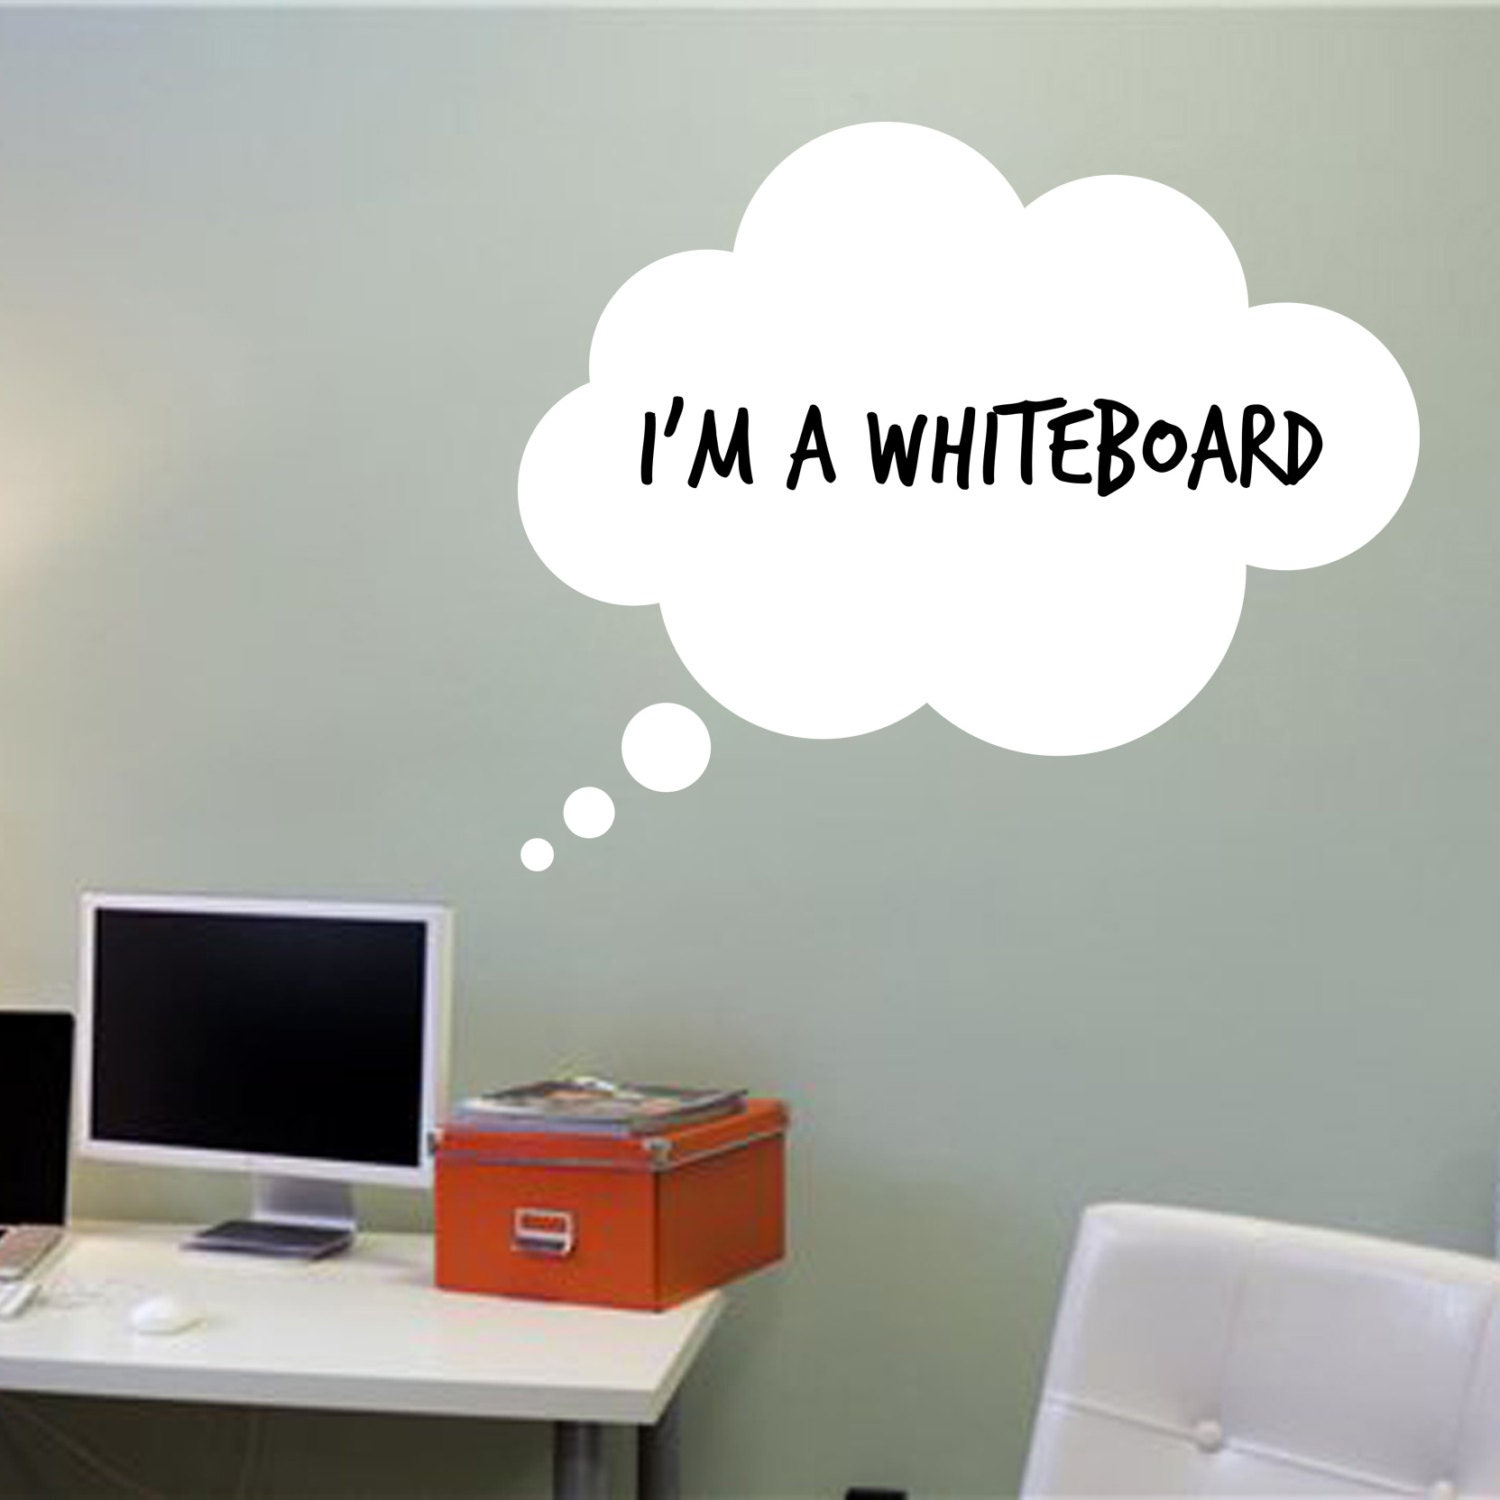 Whiteboard For Office Wall. 🔎zoom Whiteboard For Office Wall - Brint.co